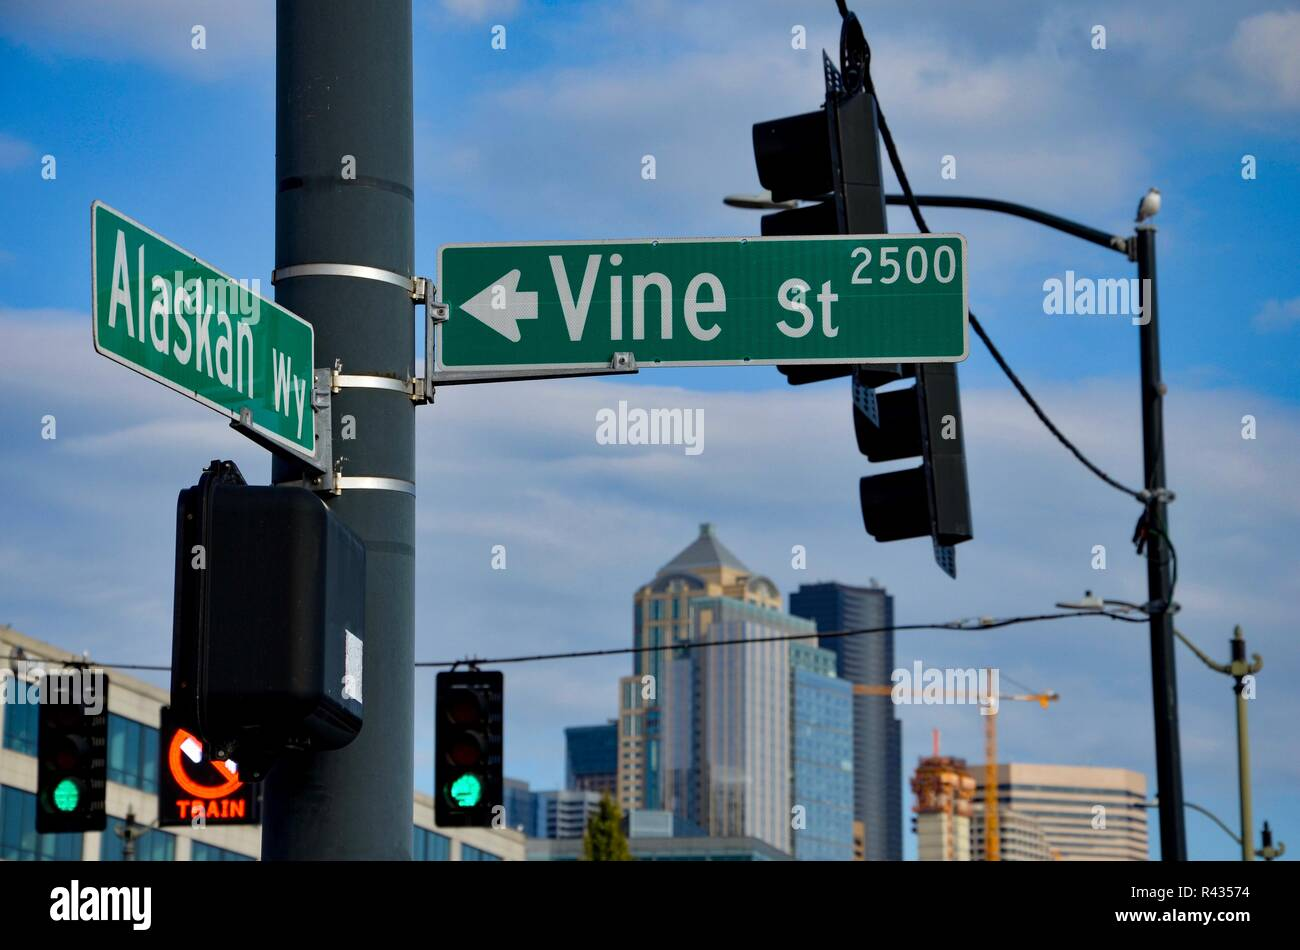 Green street sign in Seattle about Vine Street and Alaskan Way, Washington state, traffic lights, blurred background with buildings Stock Photo